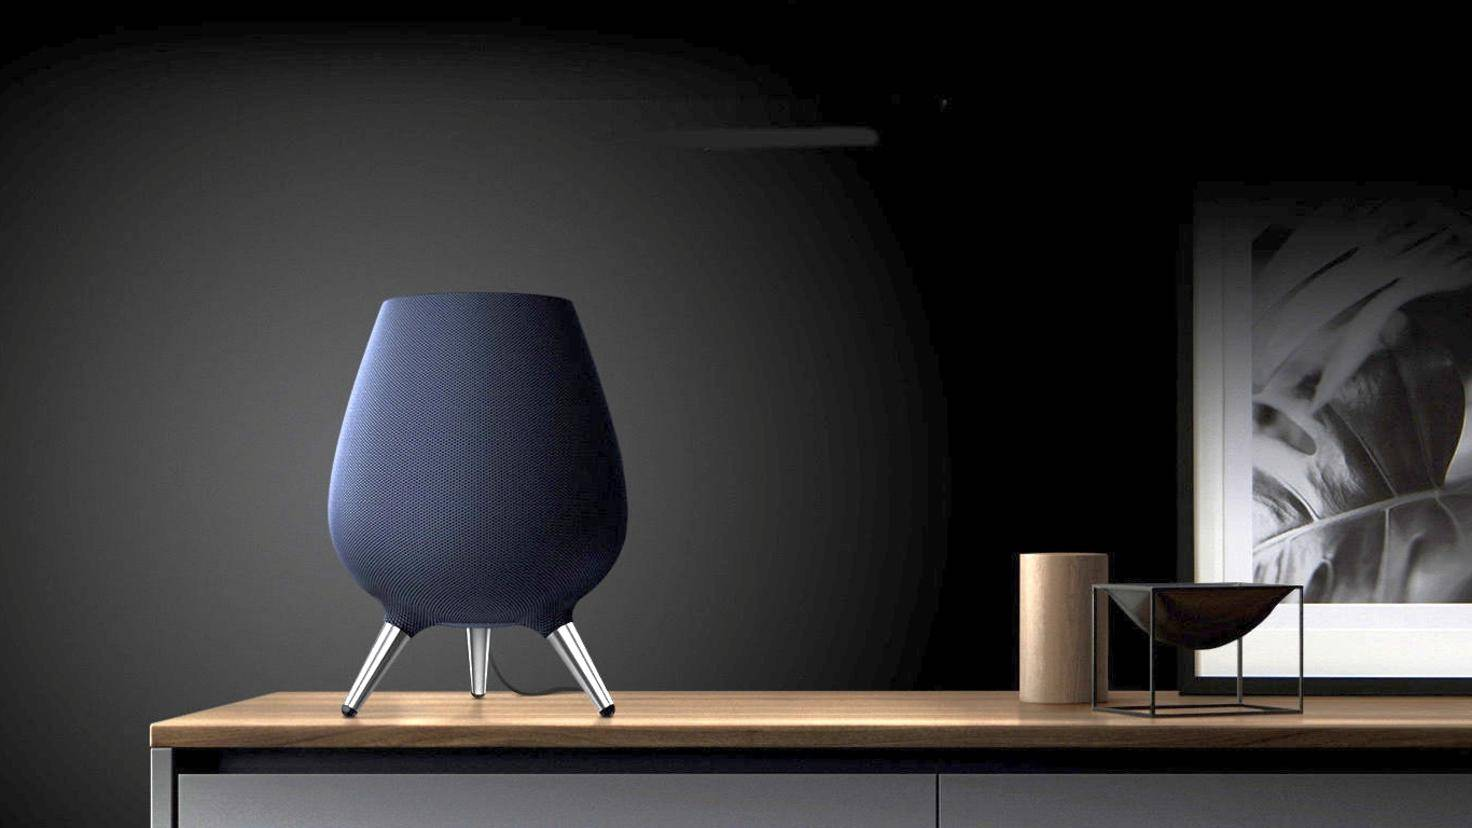 Galaxy-Home-Smart-Speaker-Samsung